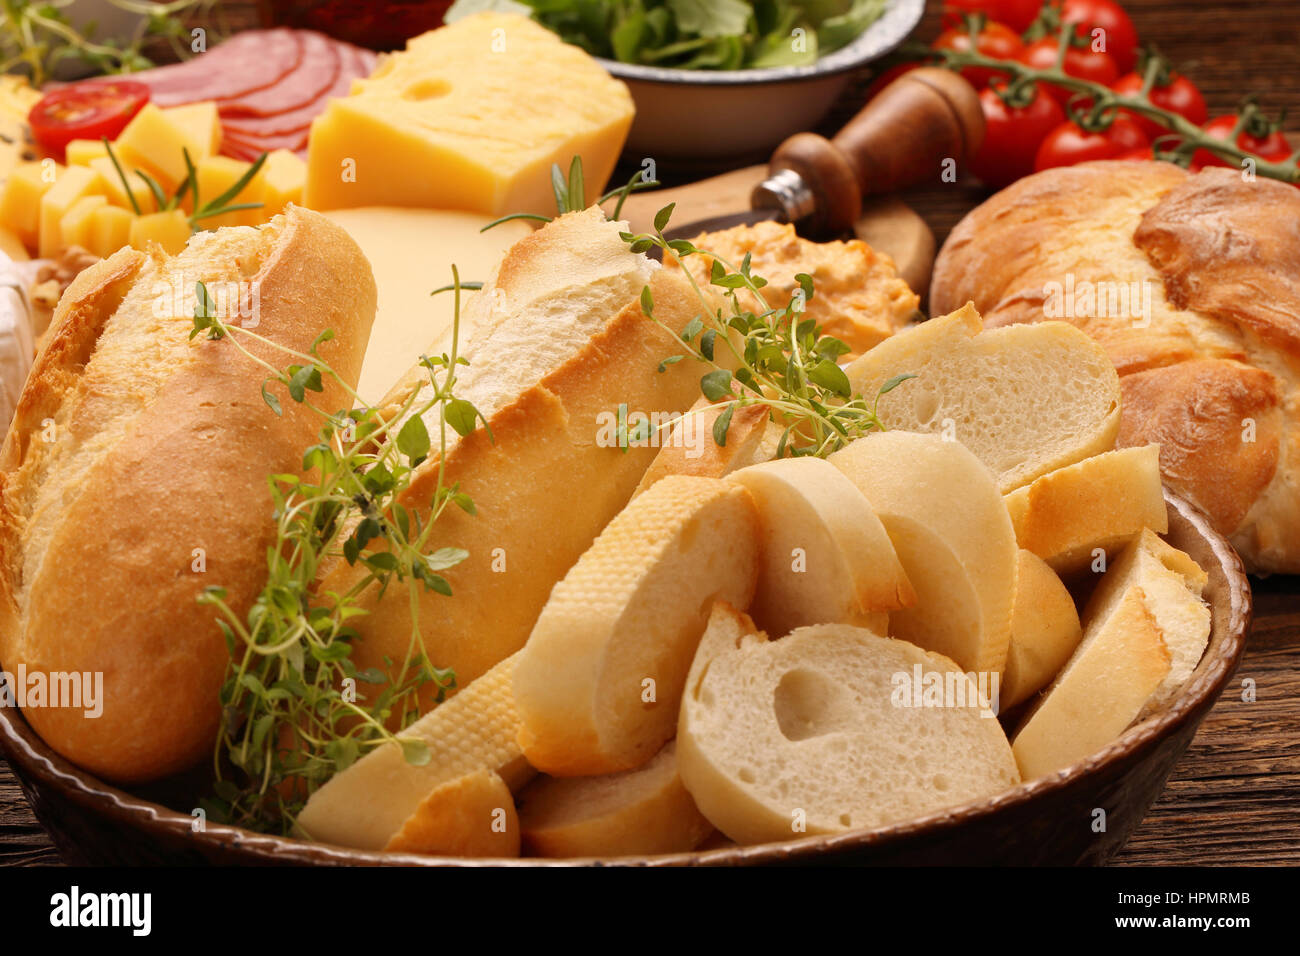 Fresh baguette and bread with herbs on rustic wooden board Stock Photo